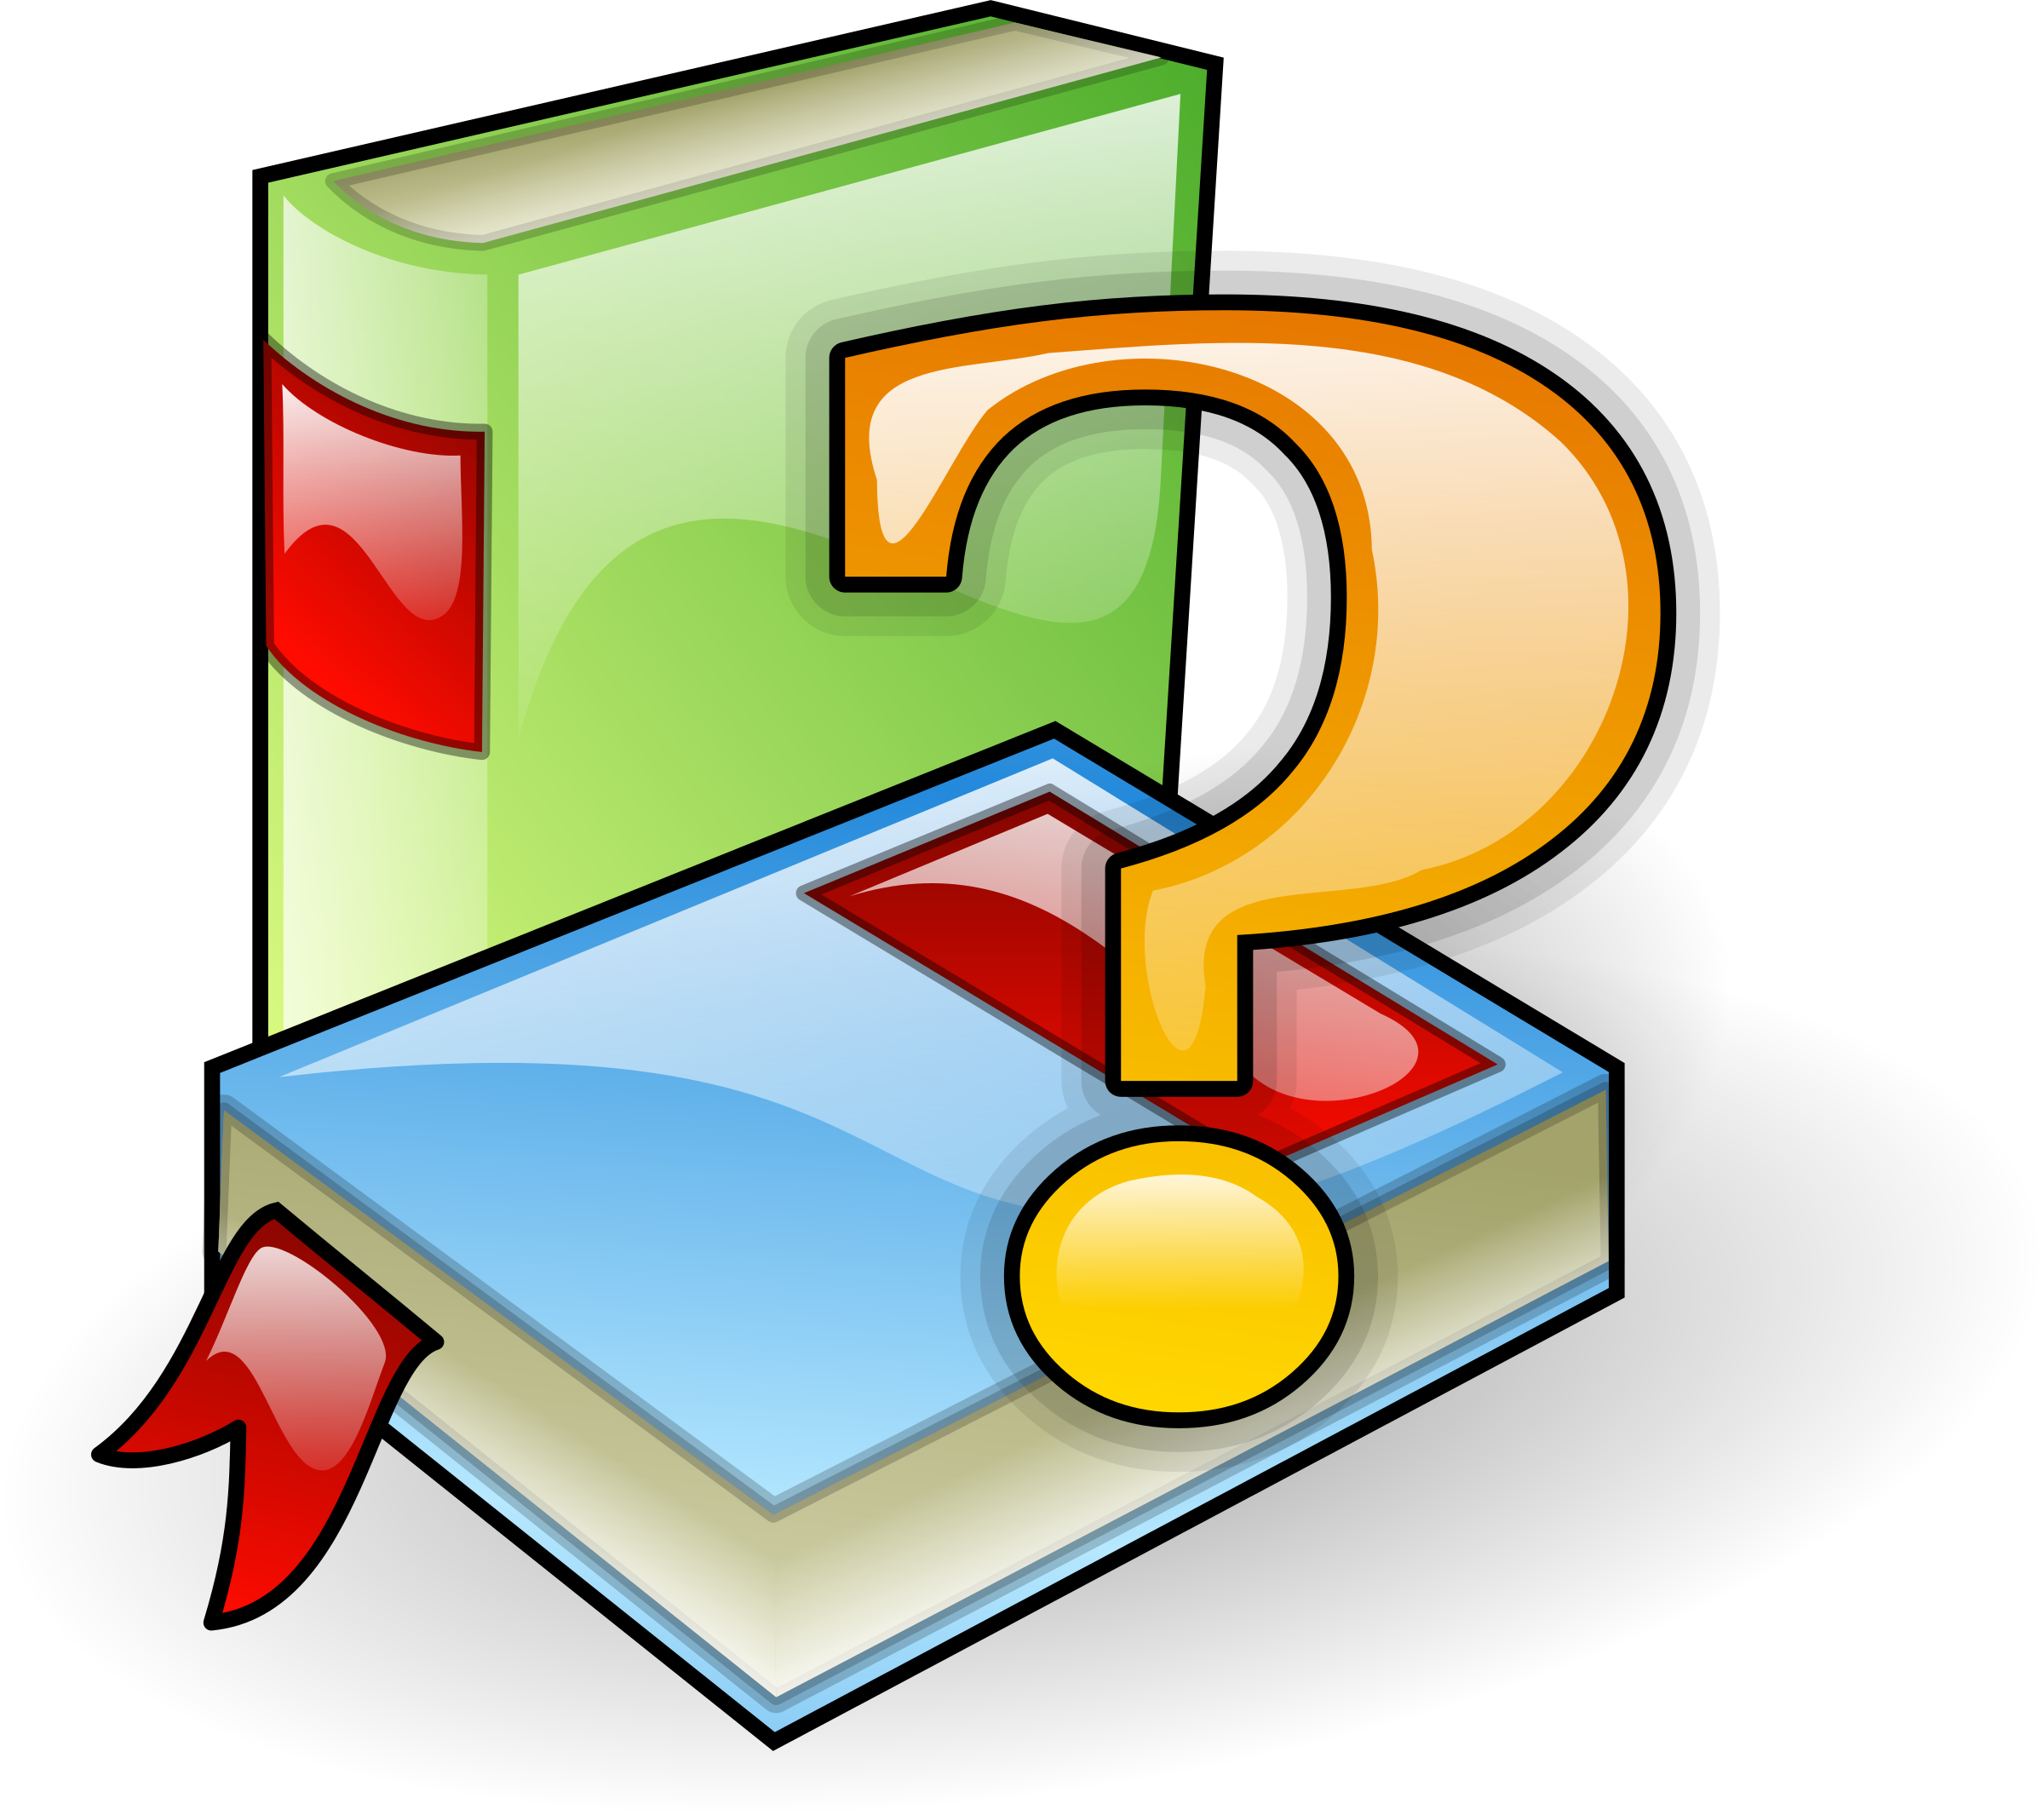 Clipart - Books with question mark svg free stock